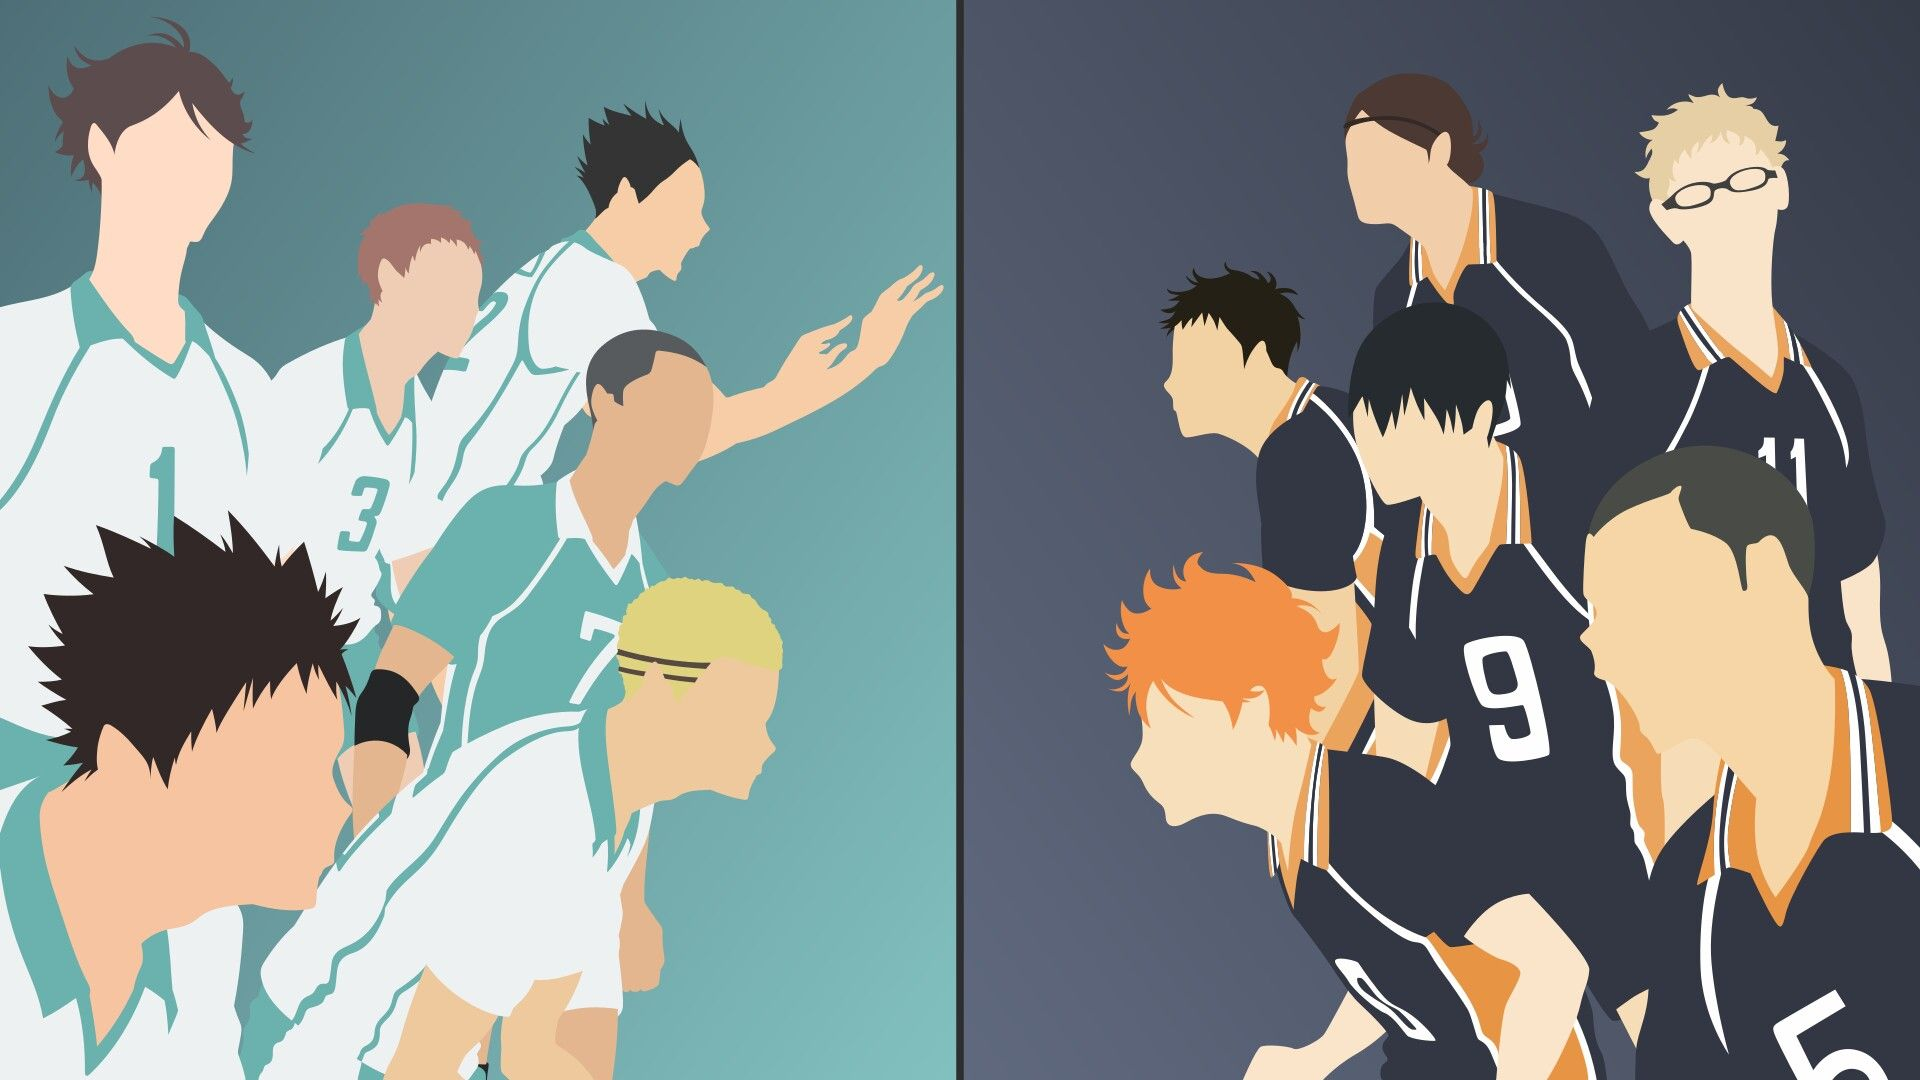 Pin By Chandra Widiat On No Face Anime Art Haikyuu Wallpaper Anime Wallpaper Iphone Haikyuu Anime